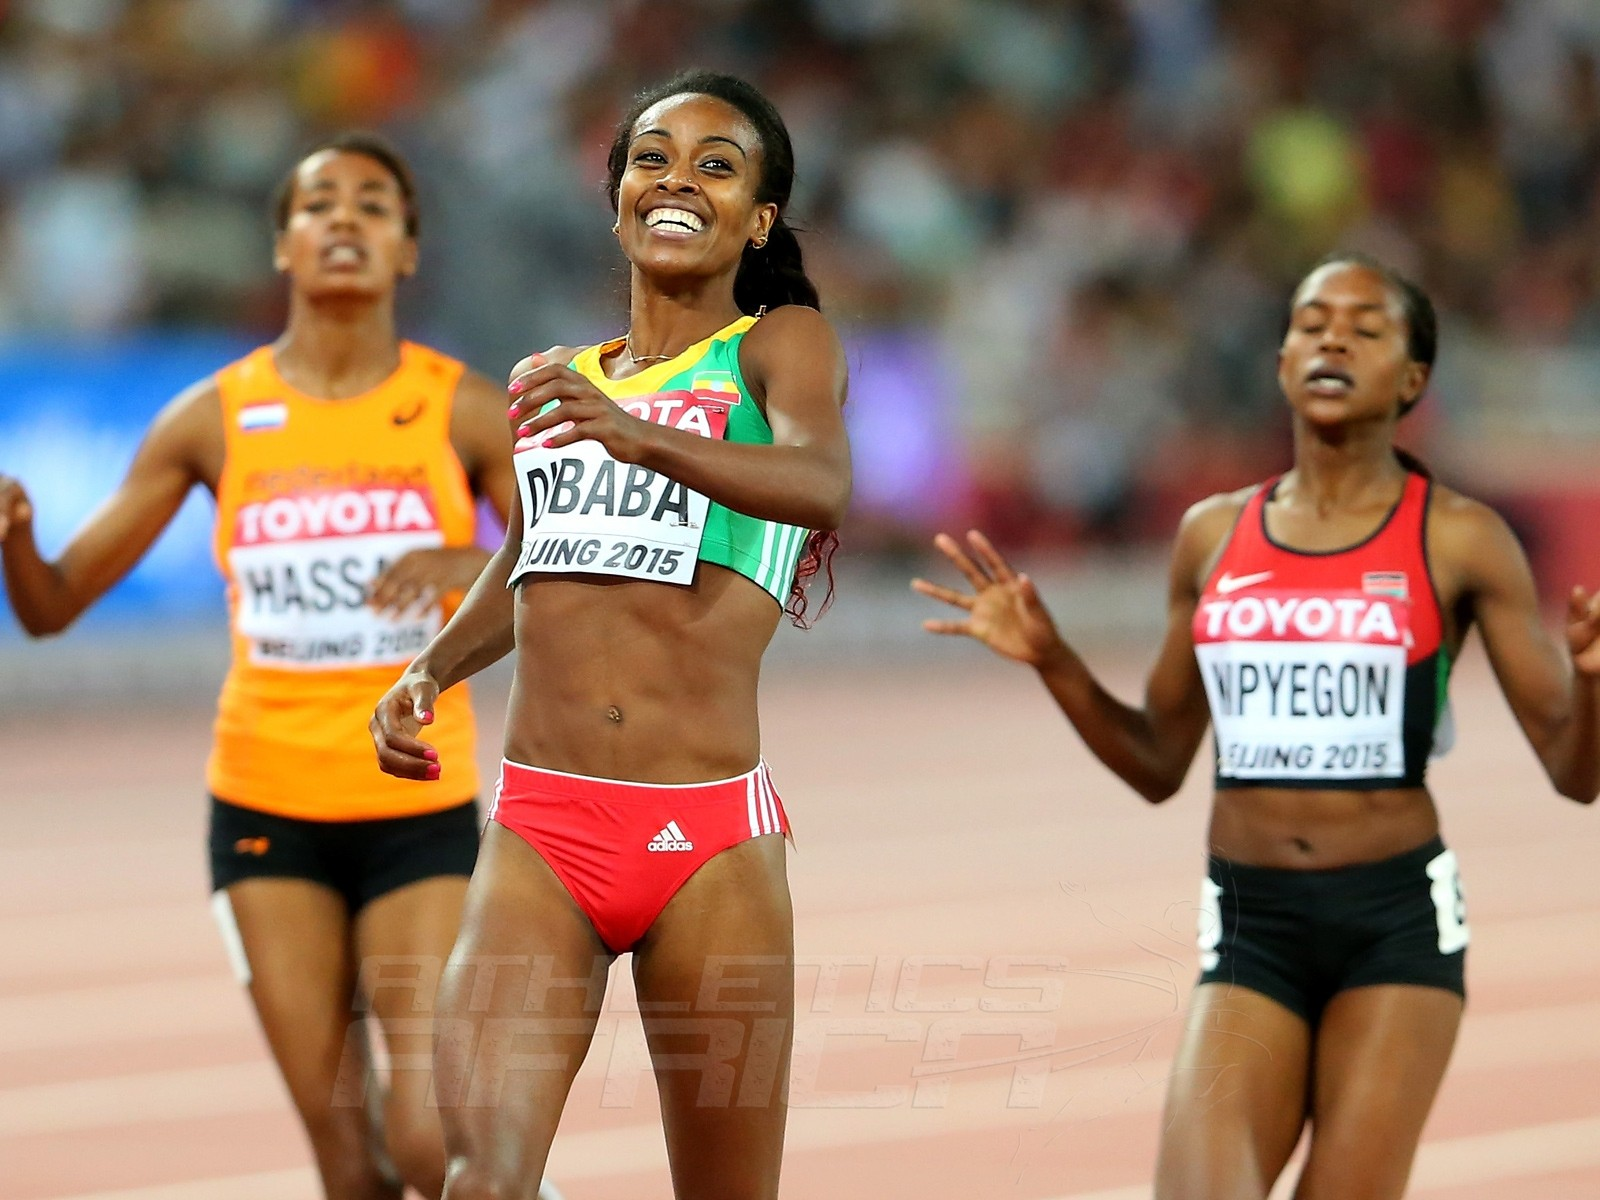 Women's 1500m final on Day 4 at the 2015 IAAF World Championships in Beijing, China / Photo credit: Getty Images for the IAAF